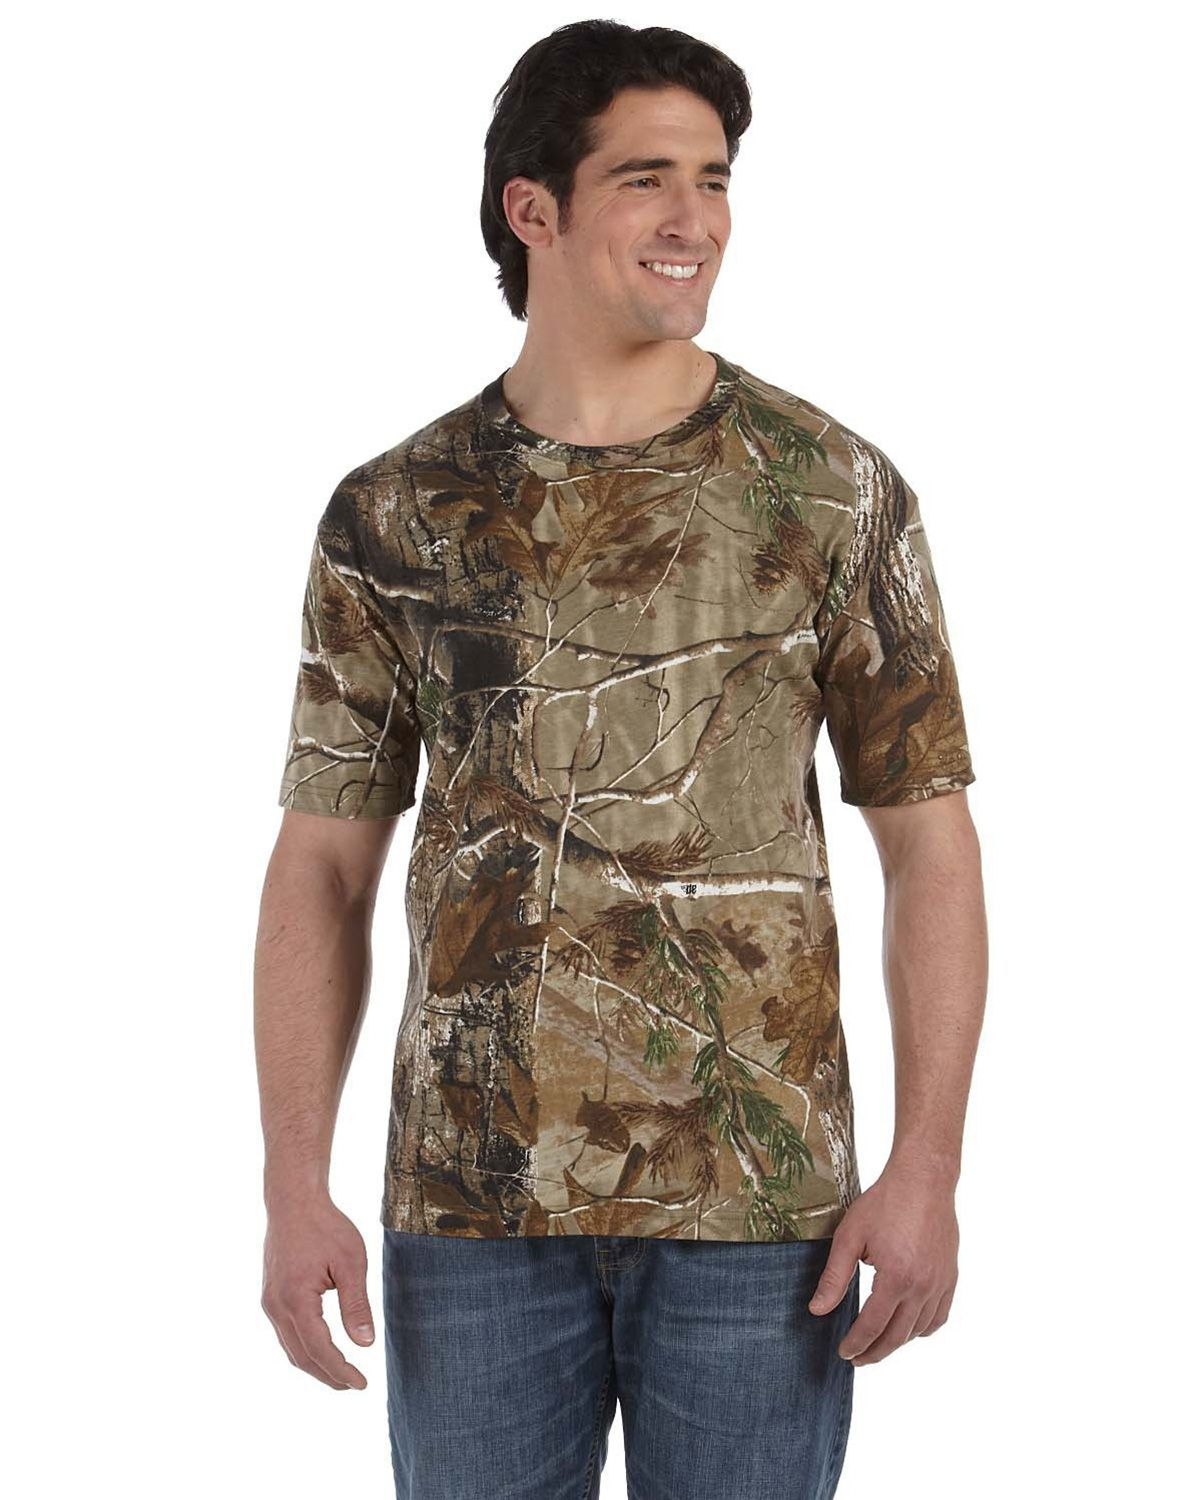 Code V 3980 Officially REALTREE Camouflage Short-Sleeve T-Shirt